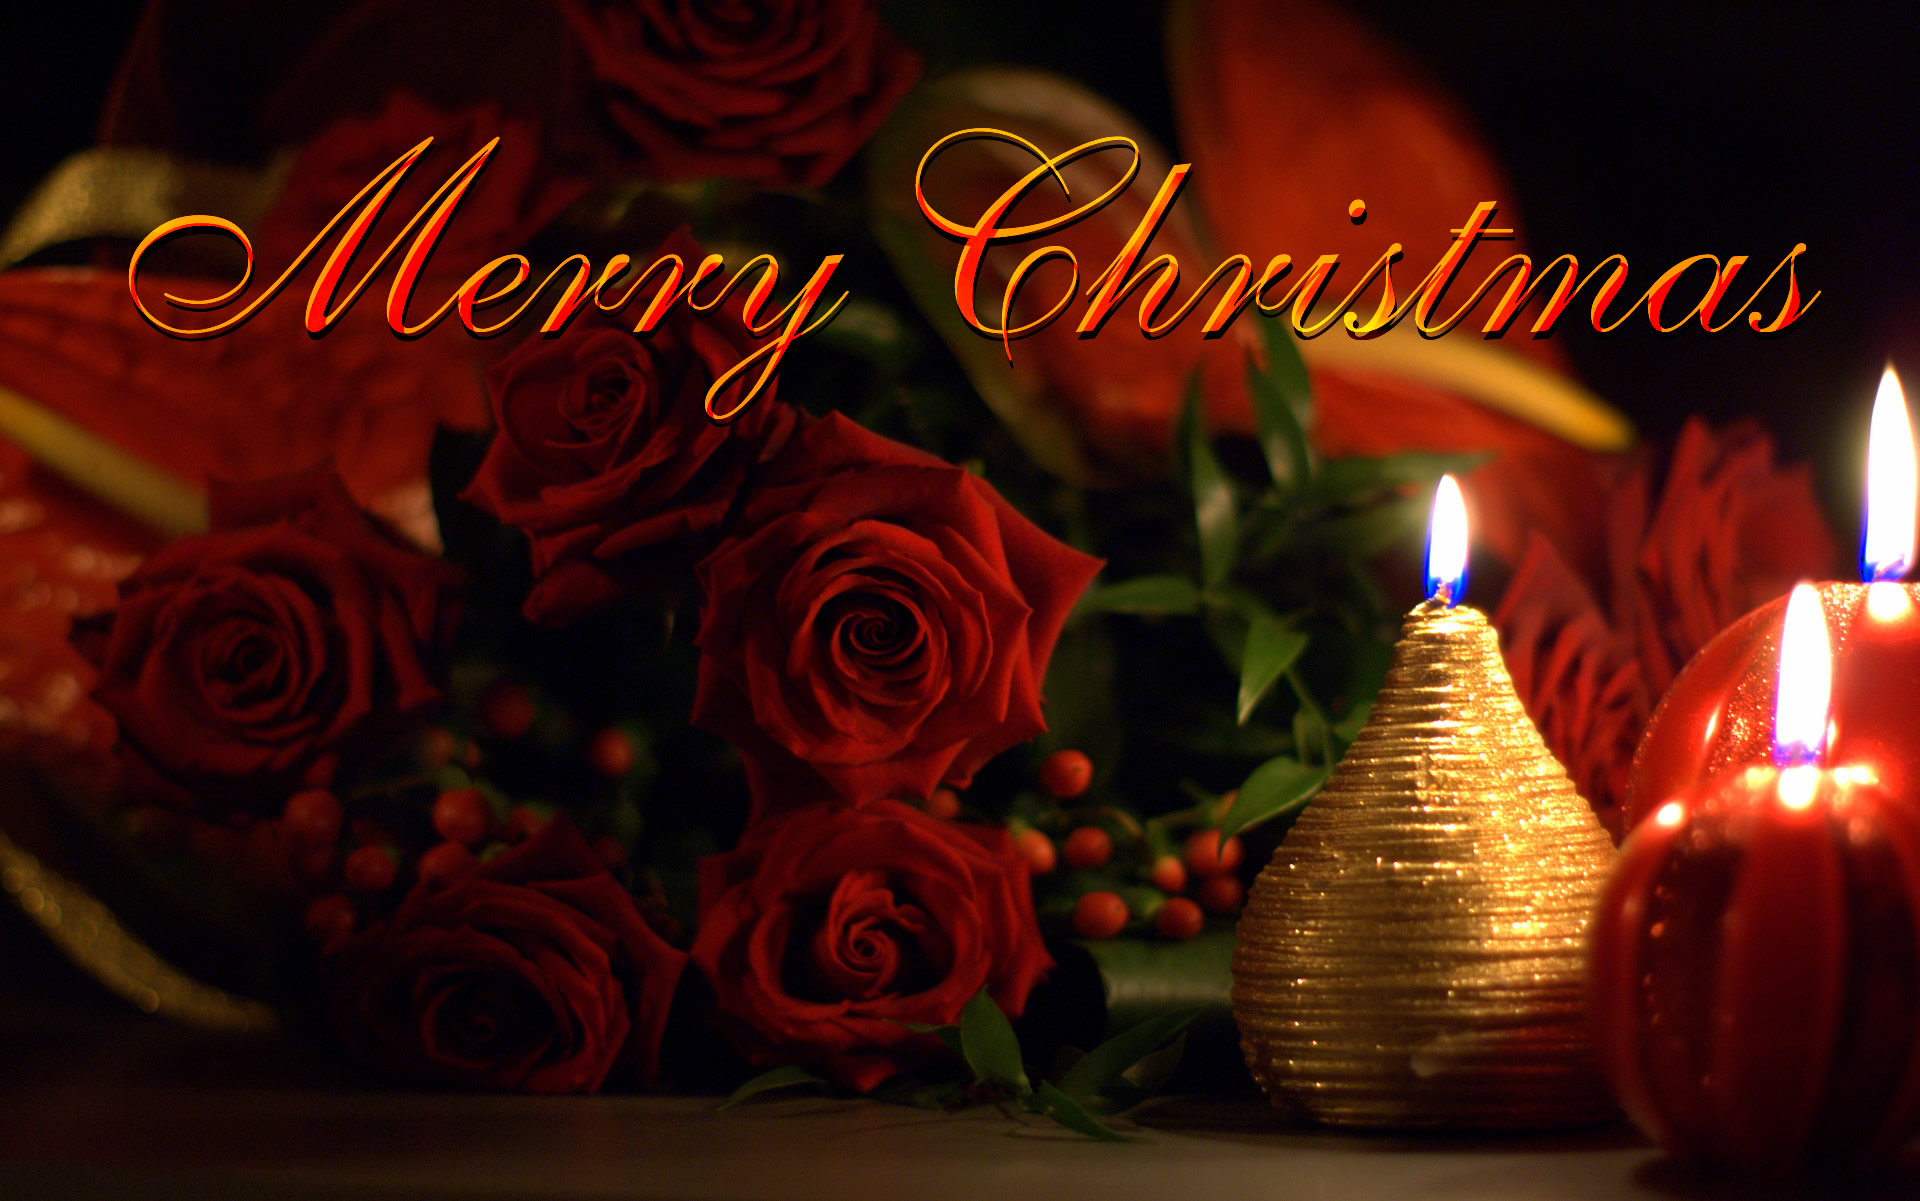 merry-christmas-ecard-beautiful-roses-and-candles-fre-hd-wallappers